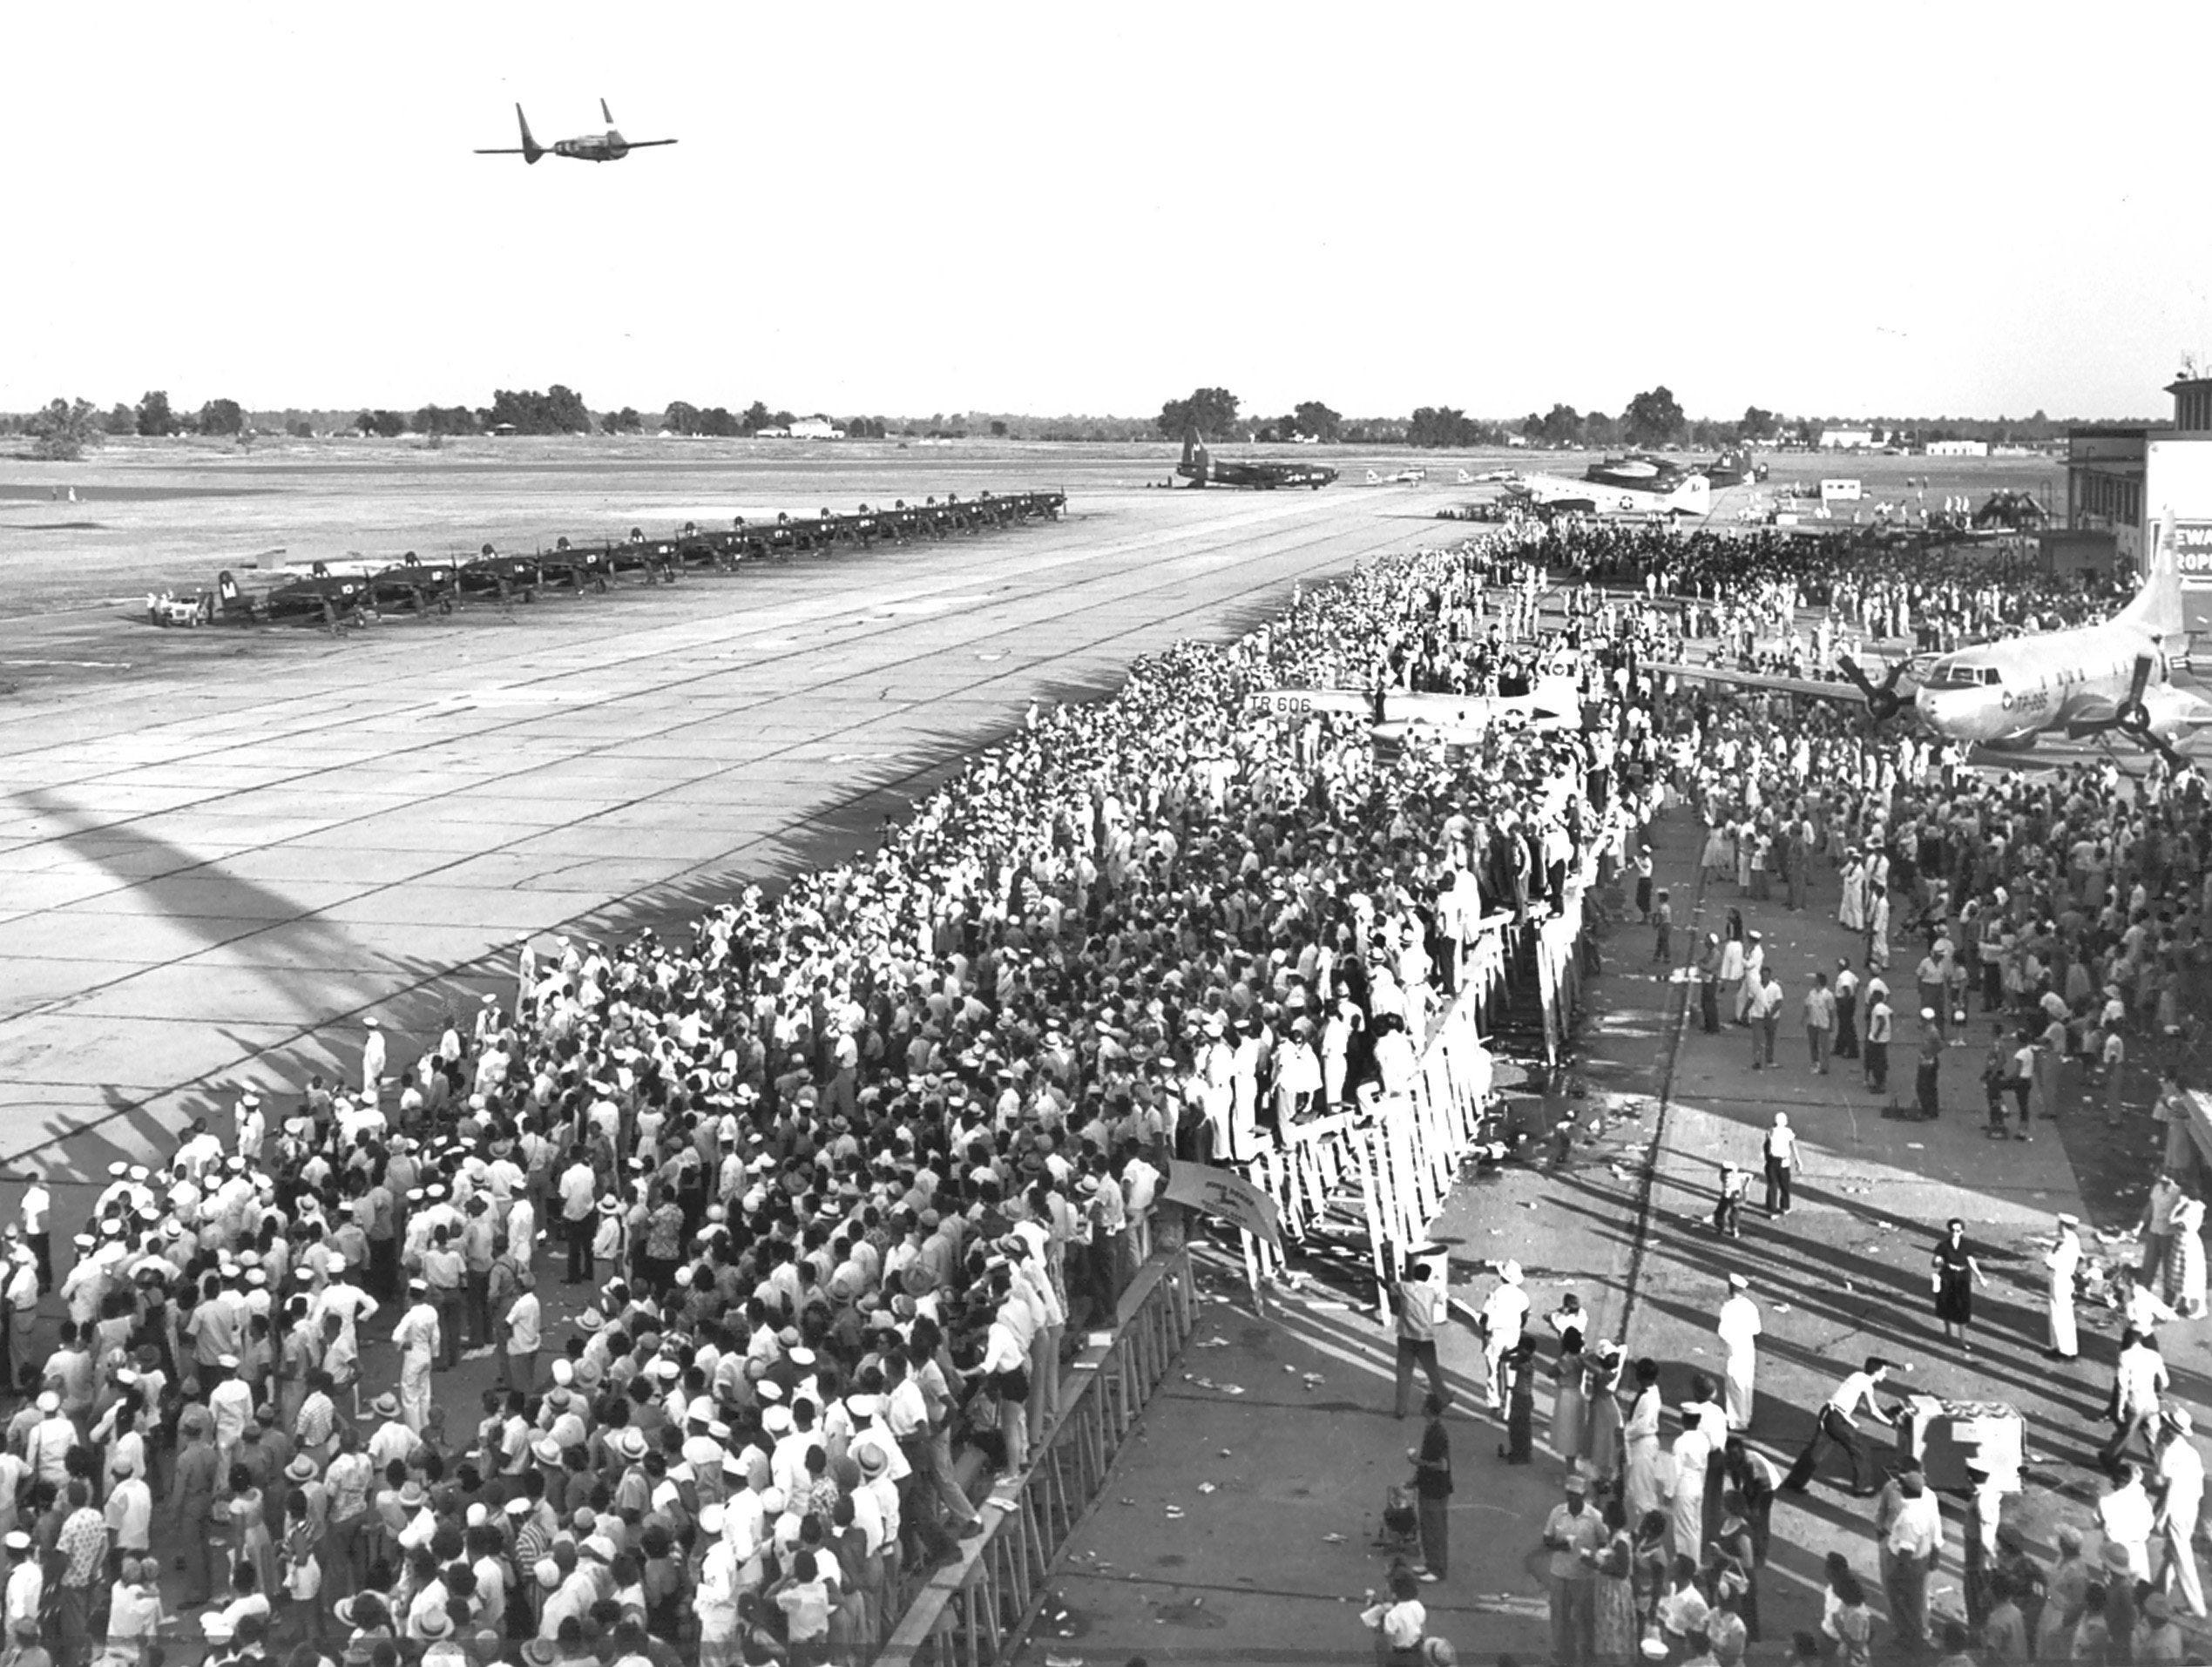 This is part of the crowd of 50,000 people who moved into Memphis Naval Air Station on 21 Jun 1953 for the festival finale. Navy officials estimated 100,000 people shared in the charity festivities.